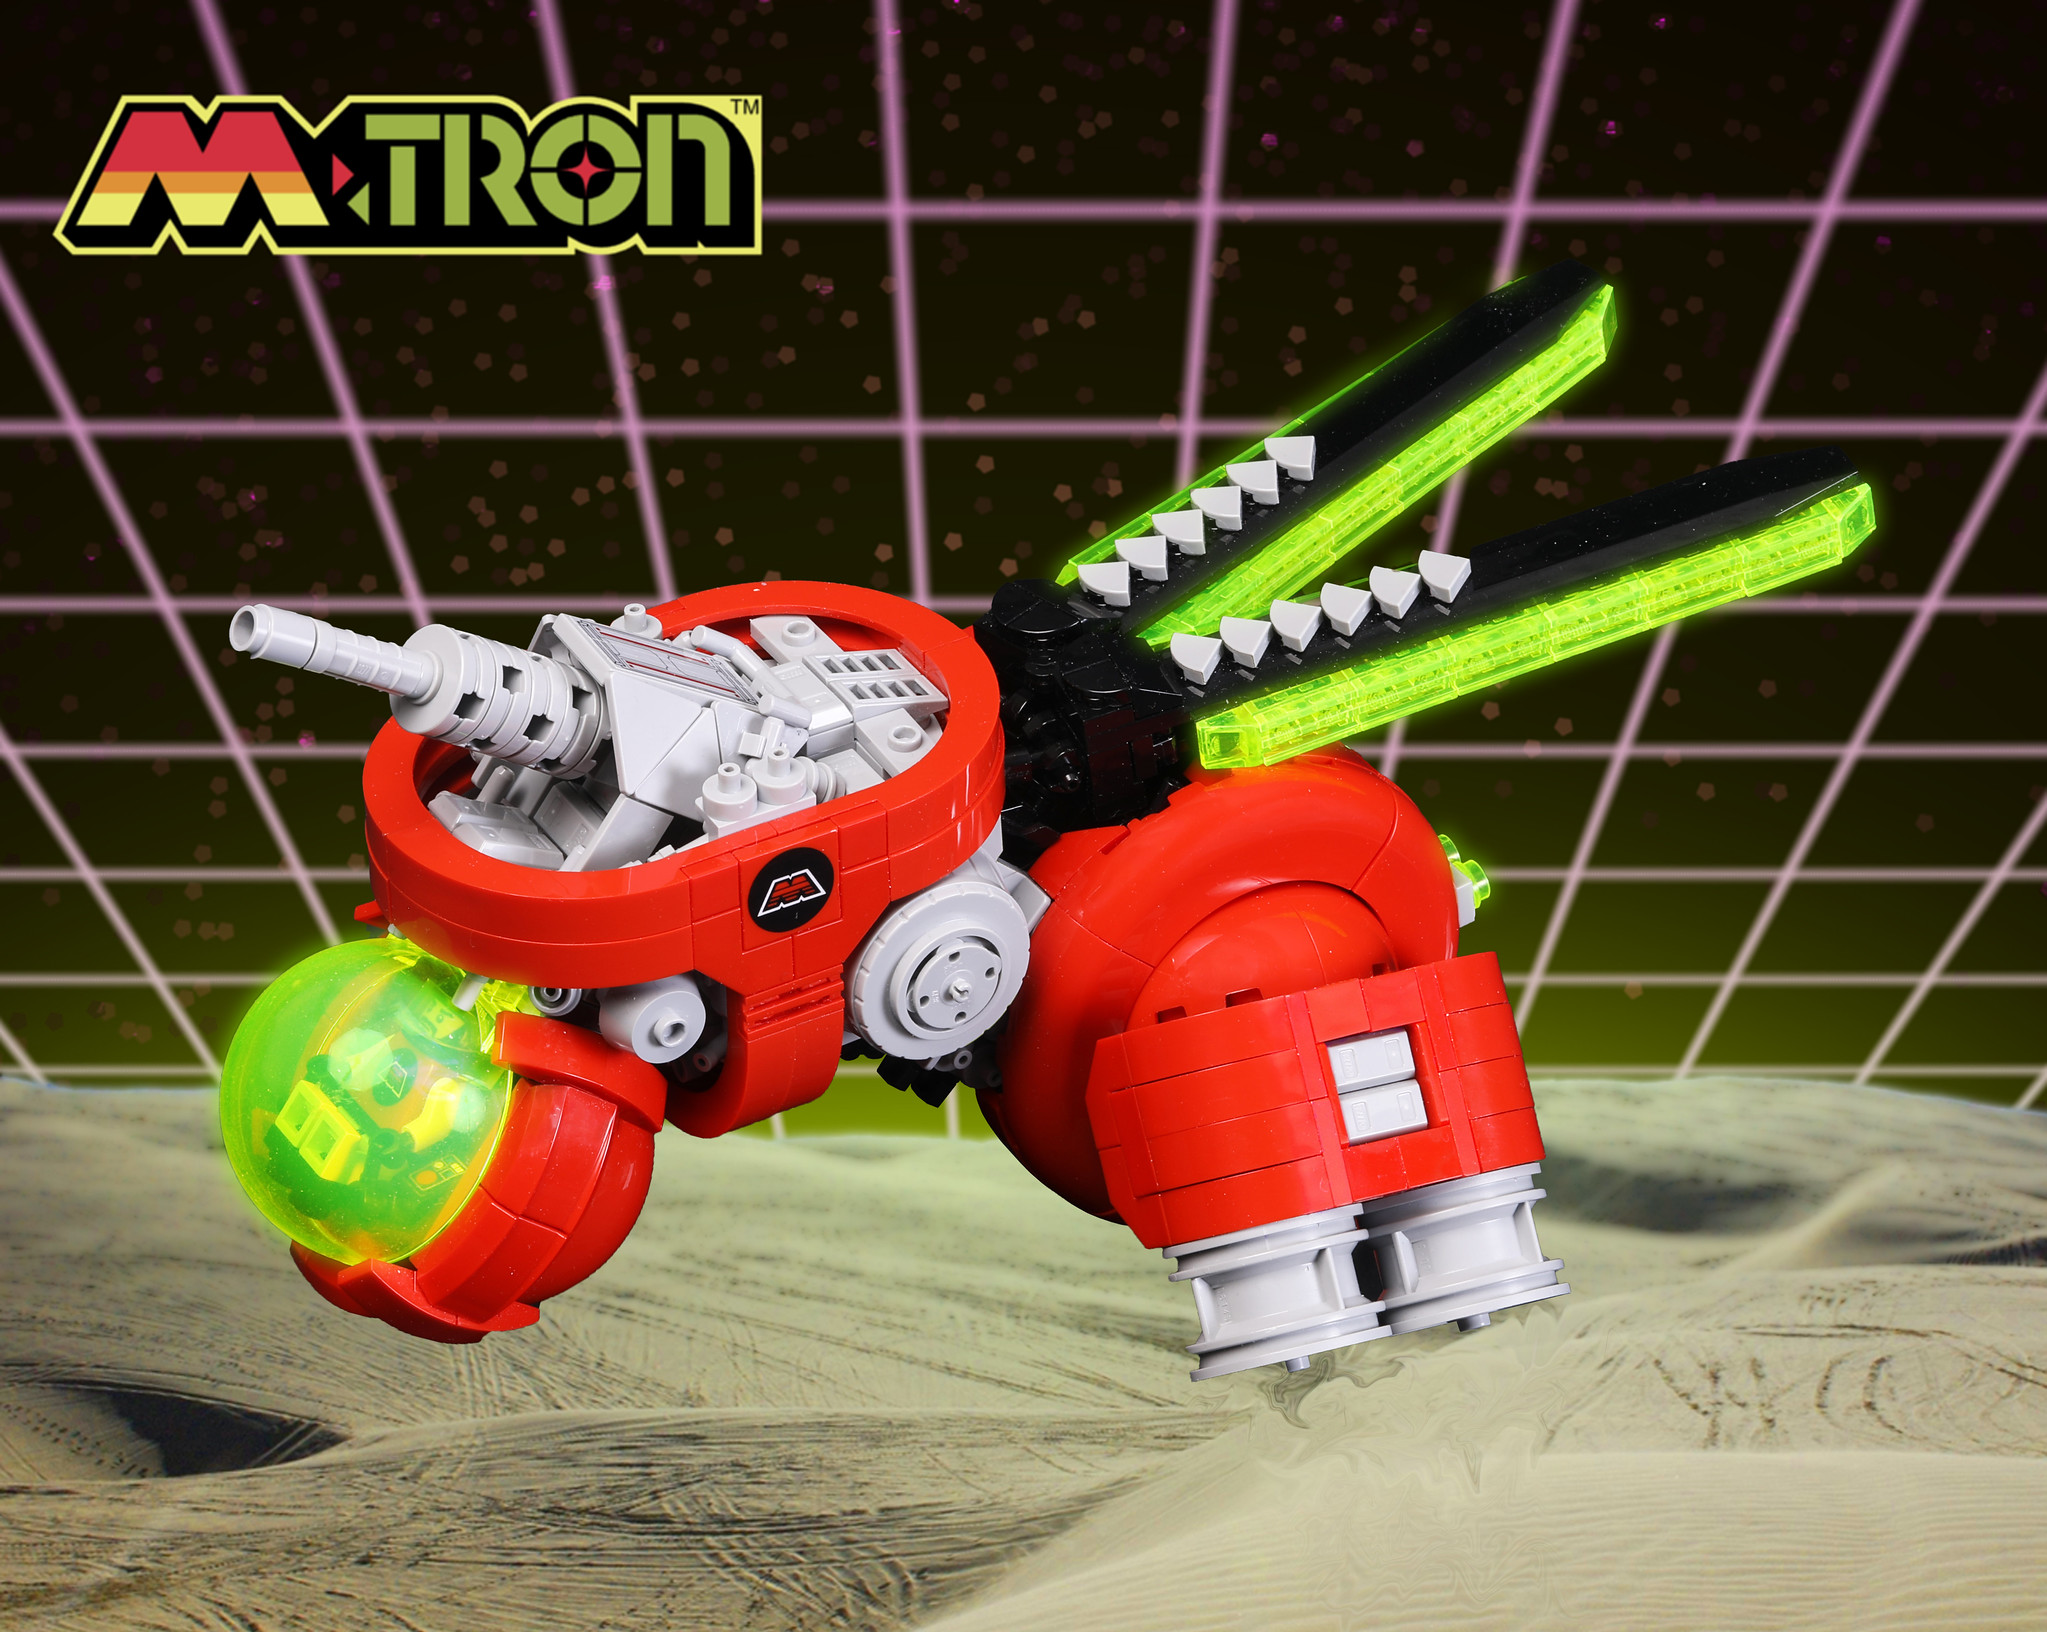 LEGO M Tron Heavy VTOL By Blake Foster On Flickr 1